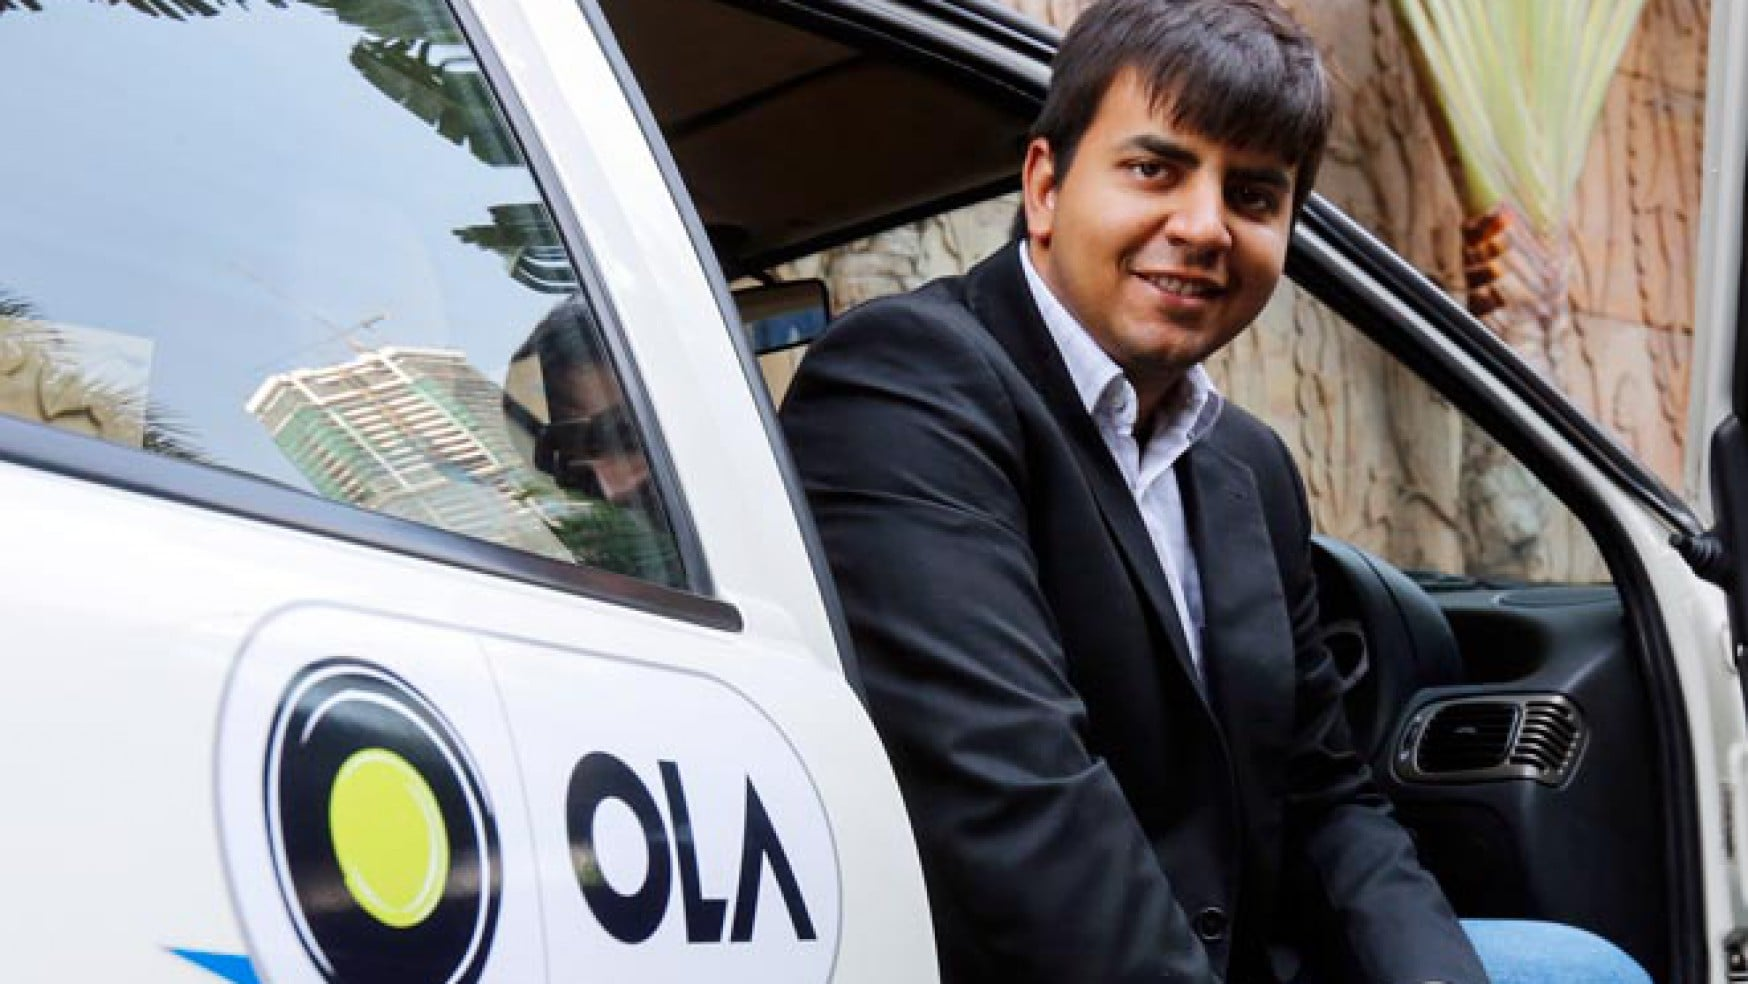 Ola raised $50Mn from Sailing capital and CEECF